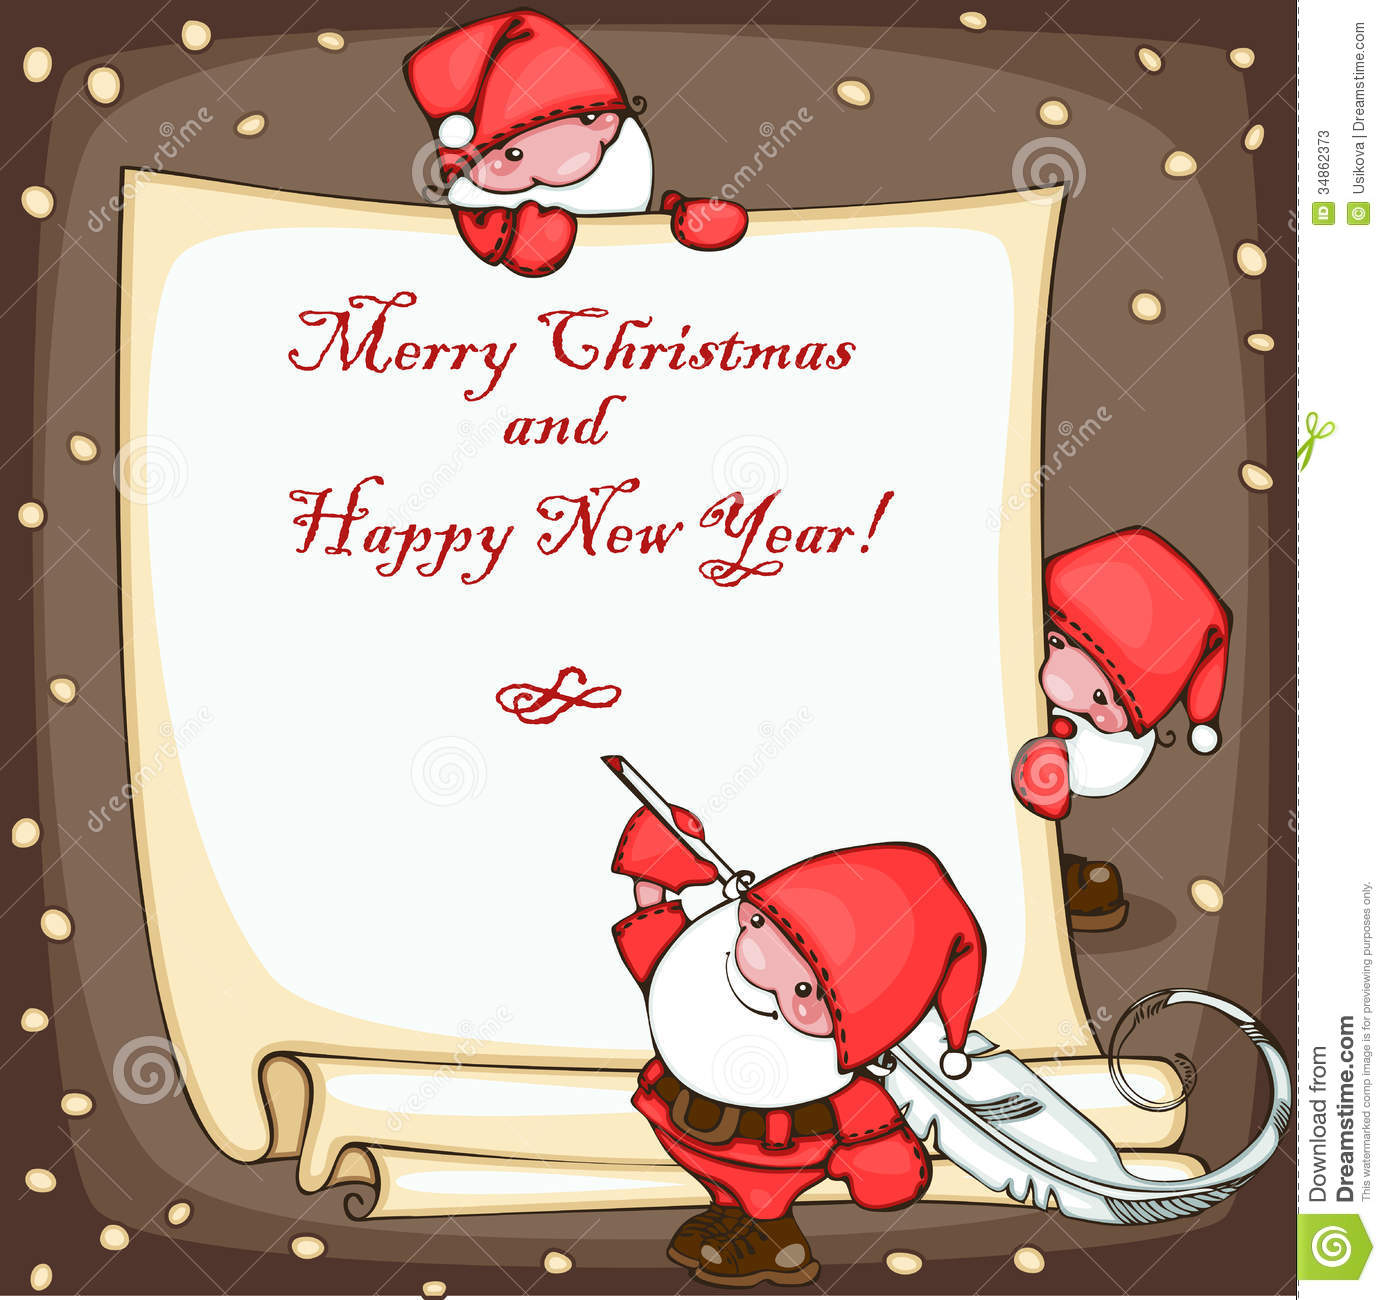 Banner merry christmas and happy new year with santa claus